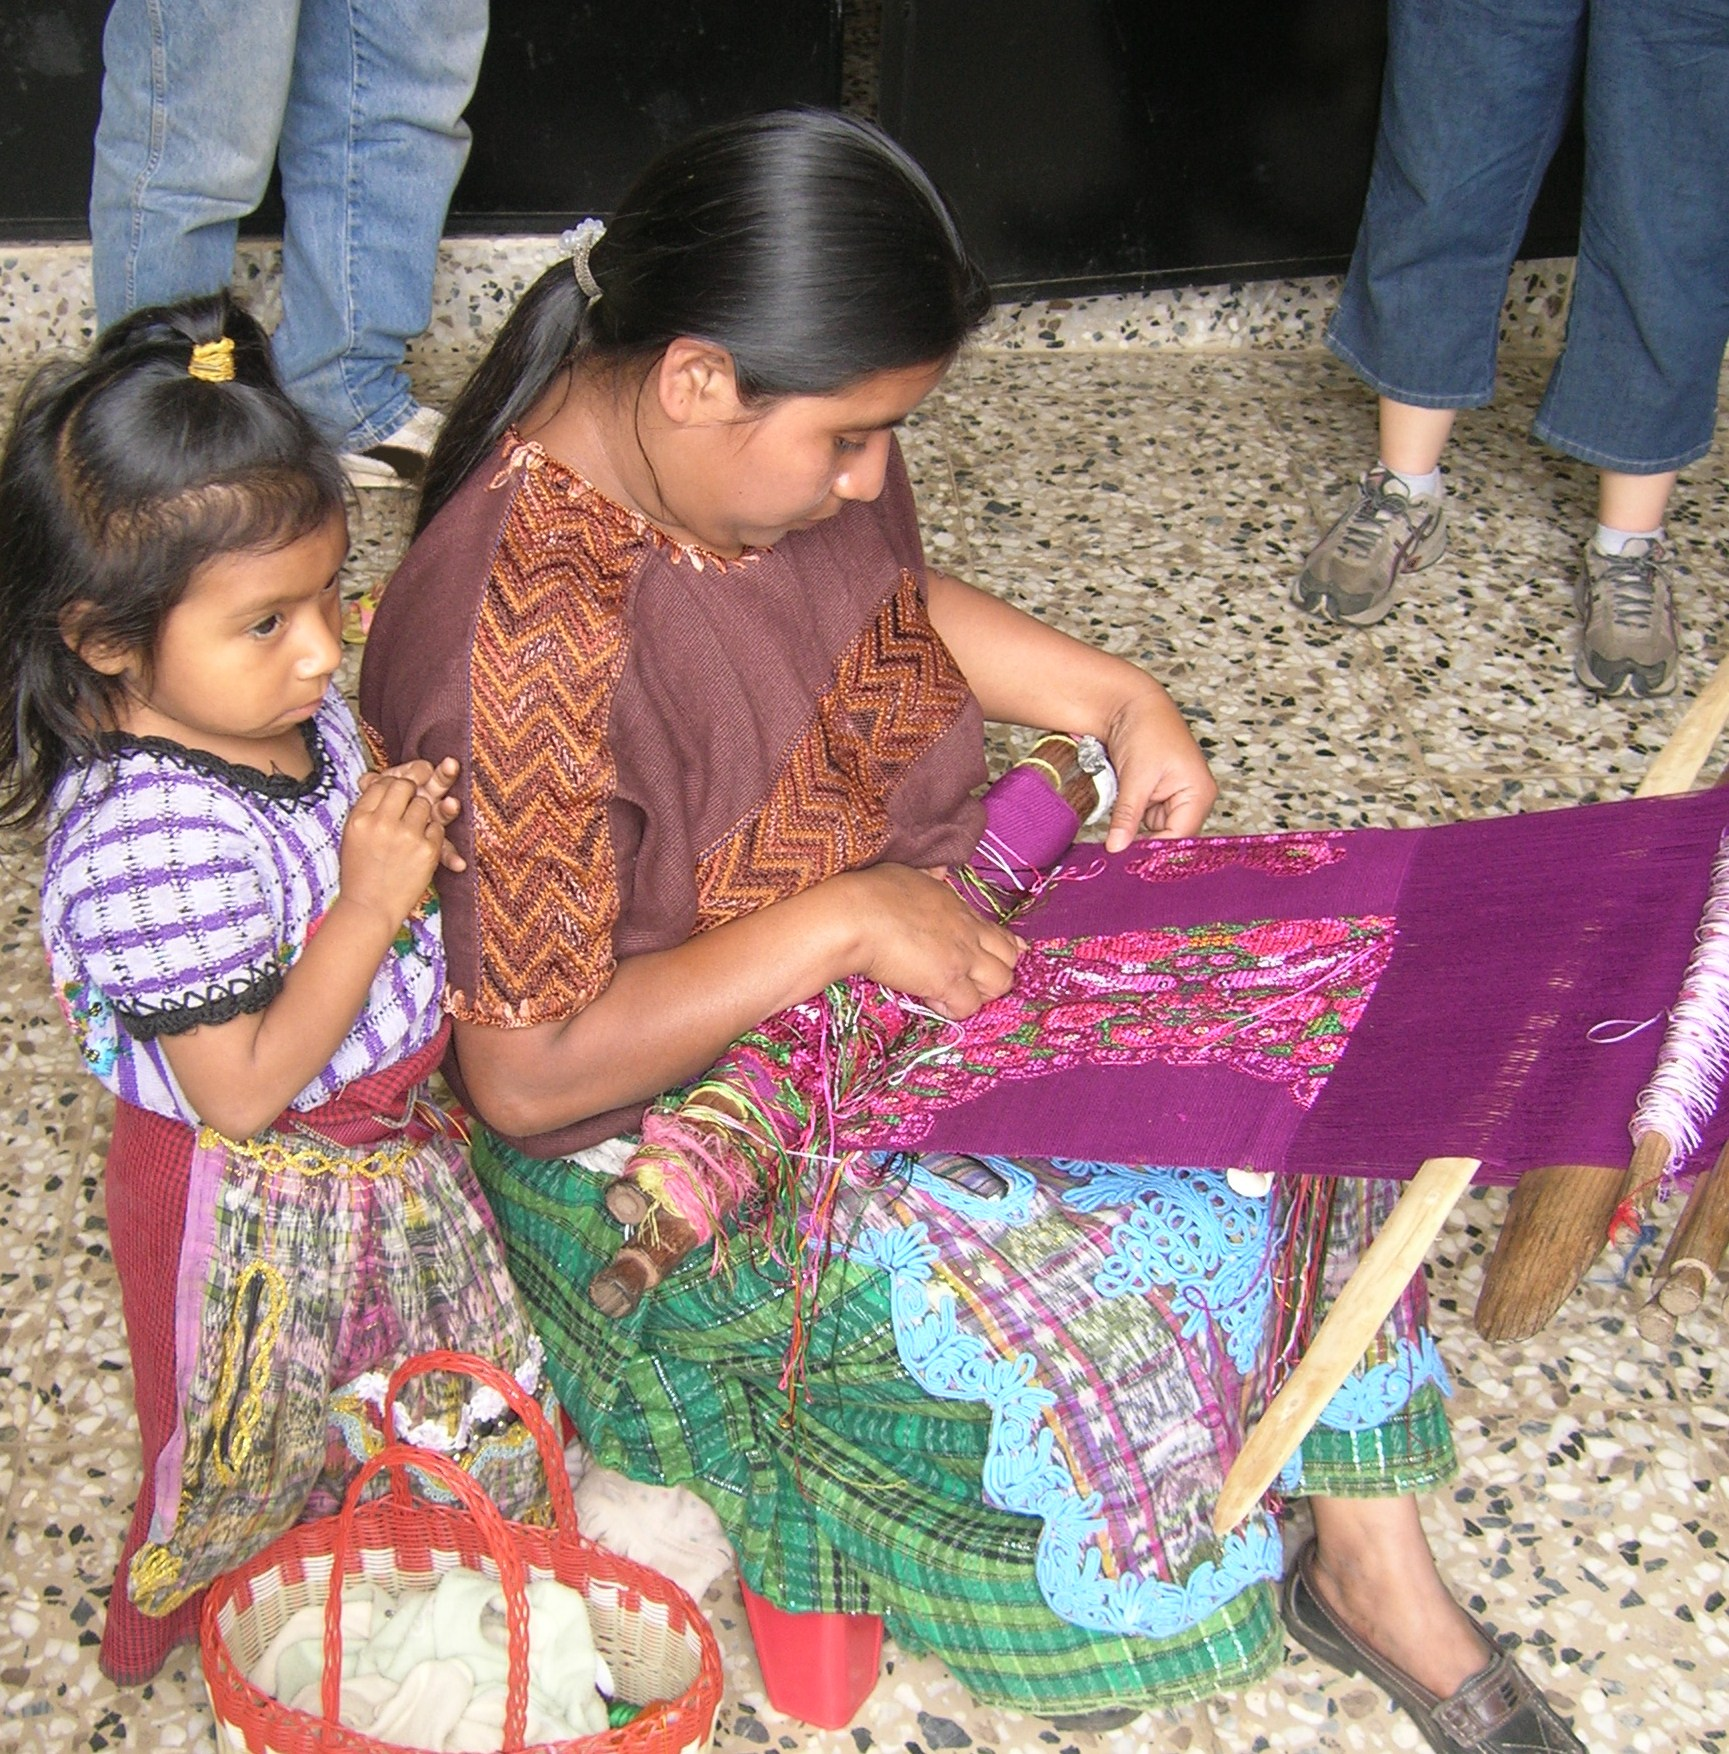 A Mayan weaver with her daughter. Backstrap weaving is a part of the culture of the western highlands of Guatemala. Young girls begin learning how to weave at about 7 years of age.